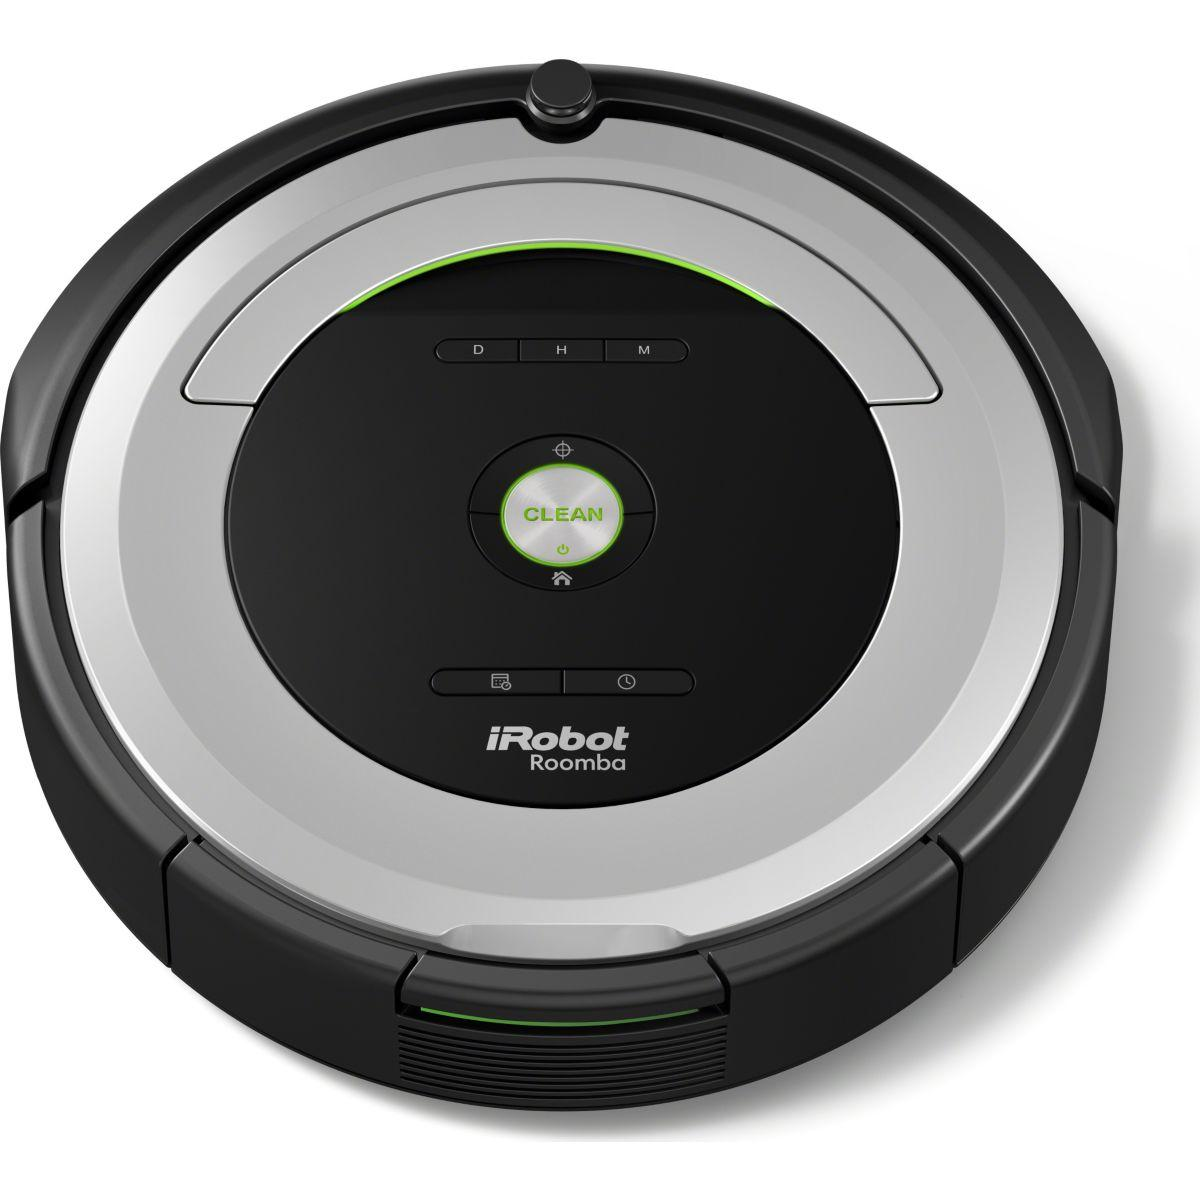 irobot aspirateur robot irobot roomba 765 aero 2 expo wixoo moteur de shopping comparateur en. Black Bedroom Furniture Sets. Home Design Ideas